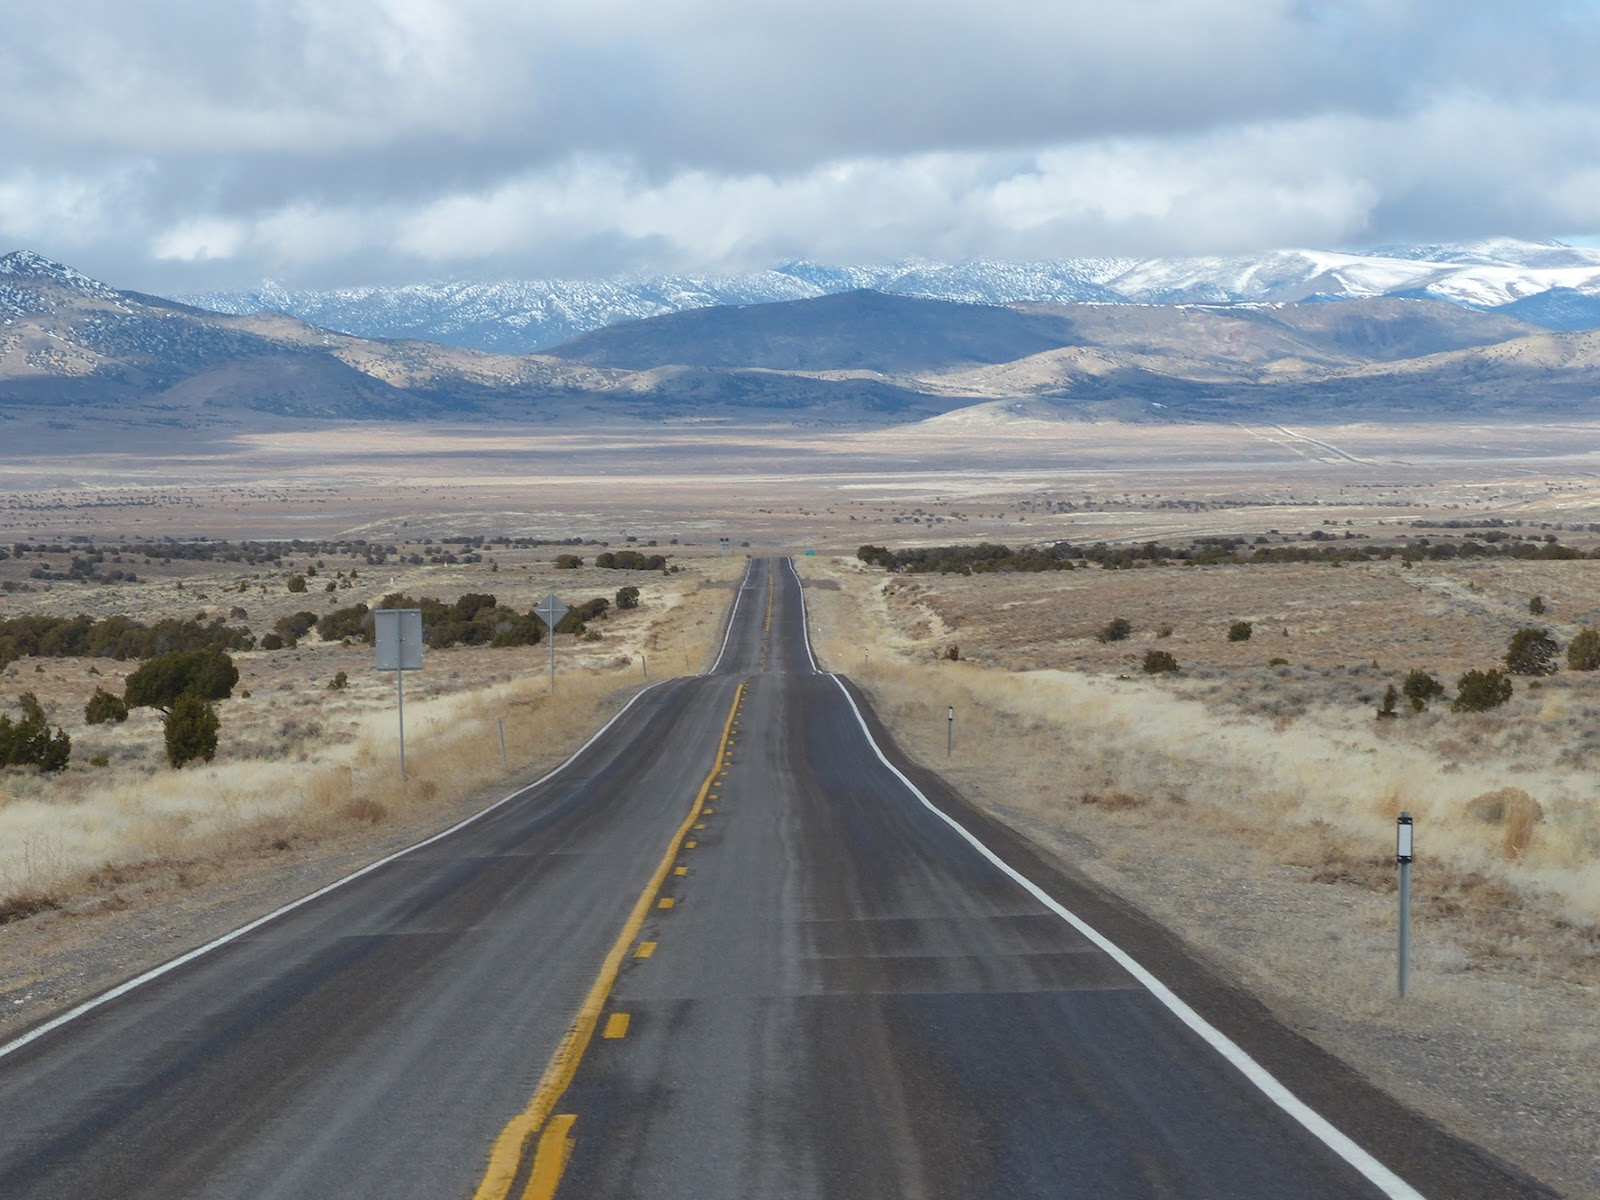 Traveling Tramps: The Loneliest Road in America: Highway 50 on u.s. route 50 in west virginia, scariest road in america, cave rock tunnel, u.s. route 395, nevada state route 319, utah state route 65, interstate 15 in nevada, nevada state route 88, interstate 80 business, nevada state route 362, u.s. route 6 in nevada, u.s. route 395 in nevada, appalachian mountains north america, most haunted road in america, hwy 50 loneliest highway in the america, road signs in america, u.s. route 50, interstate 80 in utah, loneliest place in america, u.s. route 93 alternate, first paved road in america, street life america, busiest road in america, interstate 80 in nevada, best road in america, roughest road in america, straightest road in america, road trip in america, prettiest road in america, us hwy 50 loneliest highway in america, u.s. route 95 in nevada, nevada state route 163, lincoln highway, u.s. route 50 in utah, u.s. route 50 in maryland,